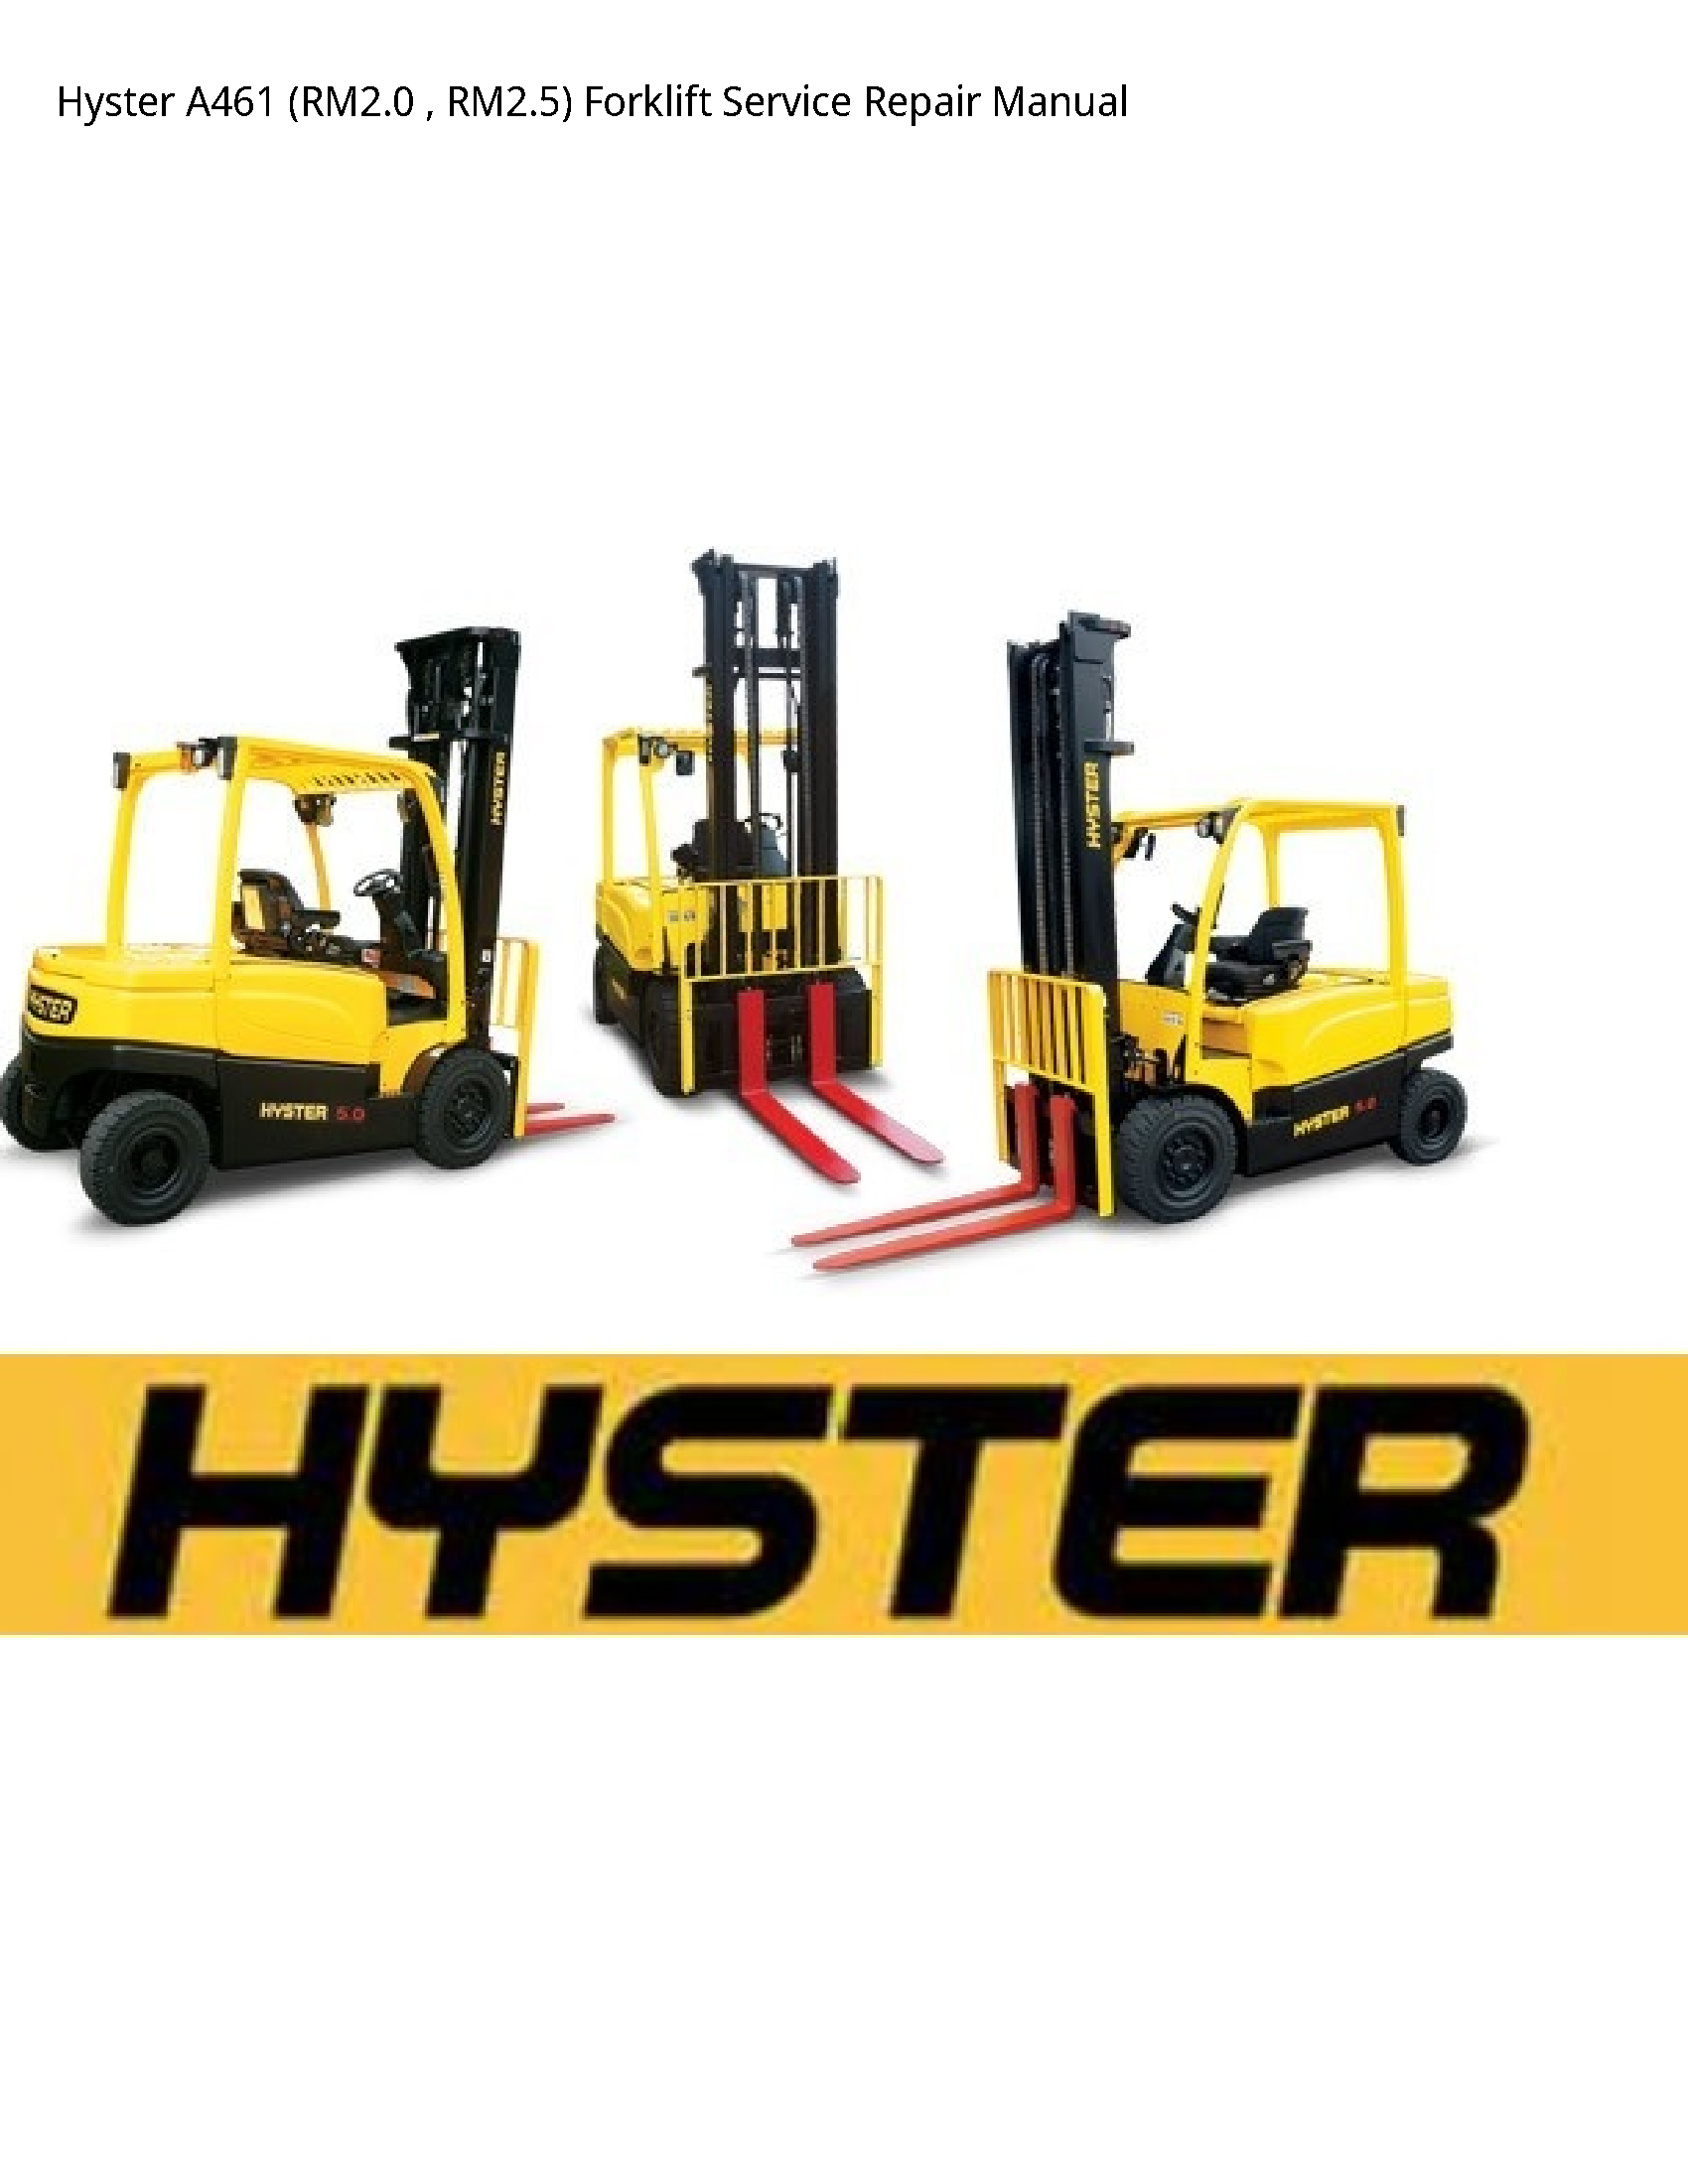 Hyster A461 Forklift manual